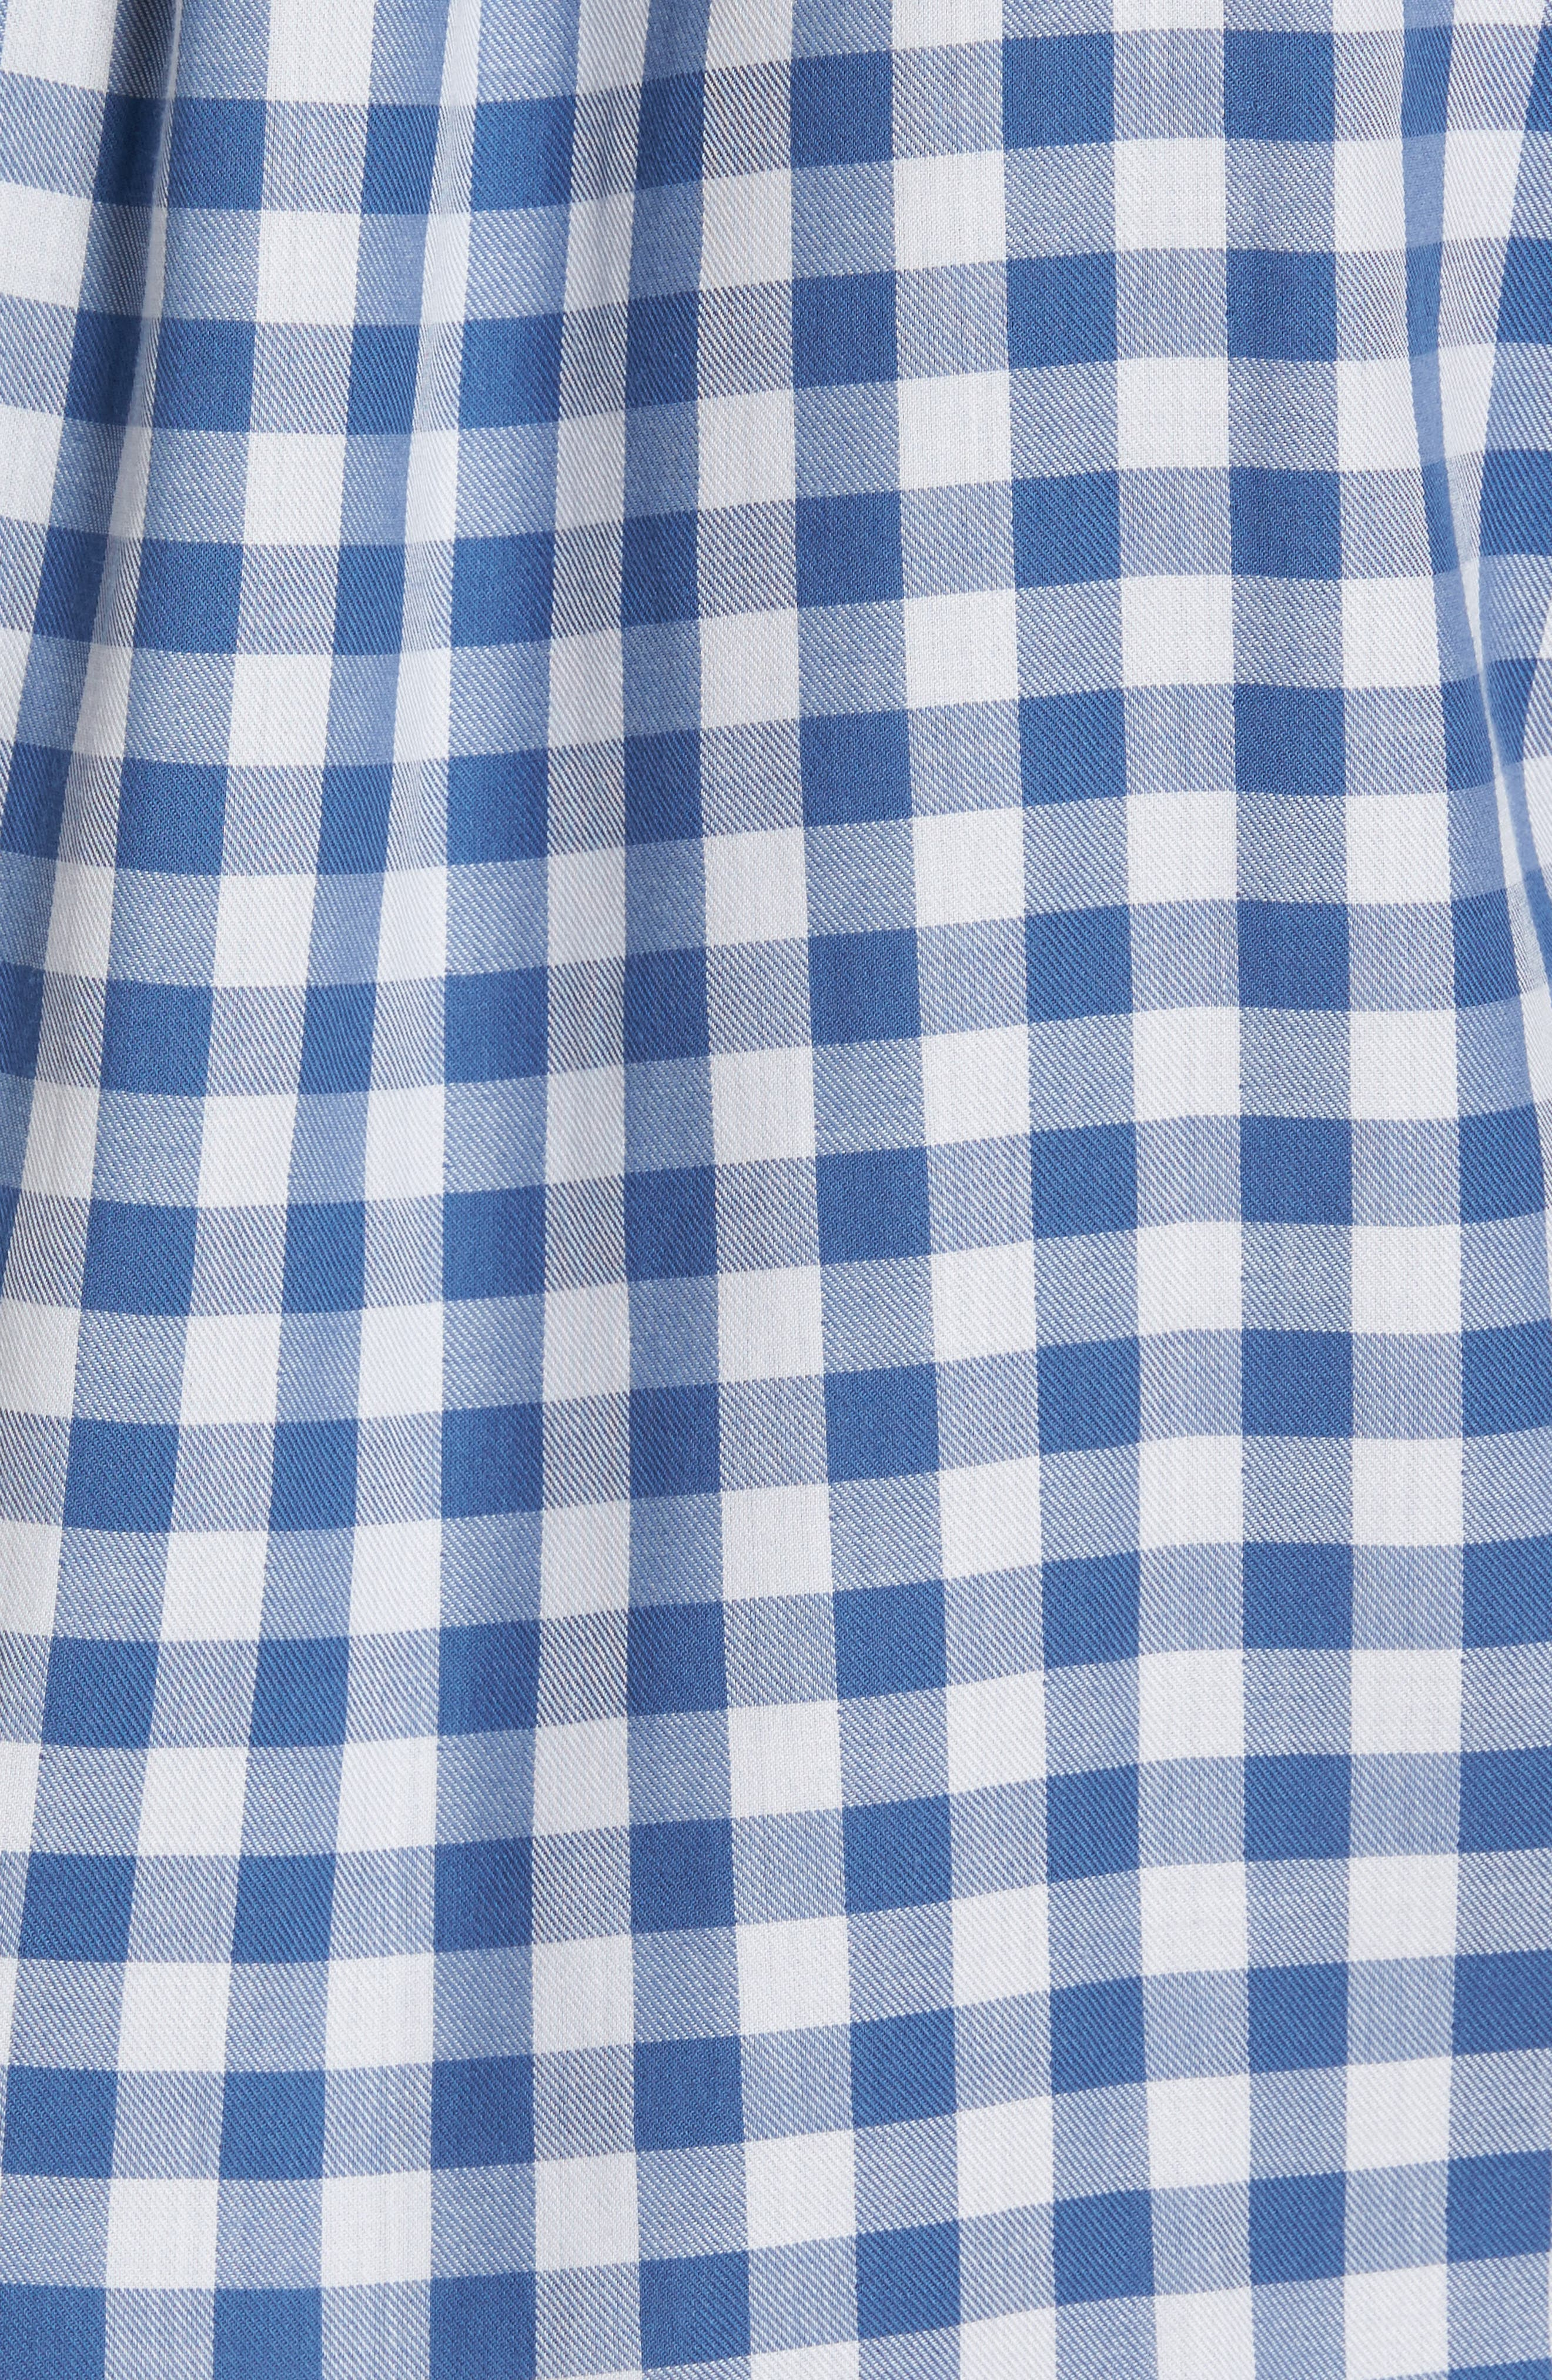 Crosby Slim Blue Heron Gingham Sport Shirt,                             Alternate thumbnail 5, color,                             Moonshine